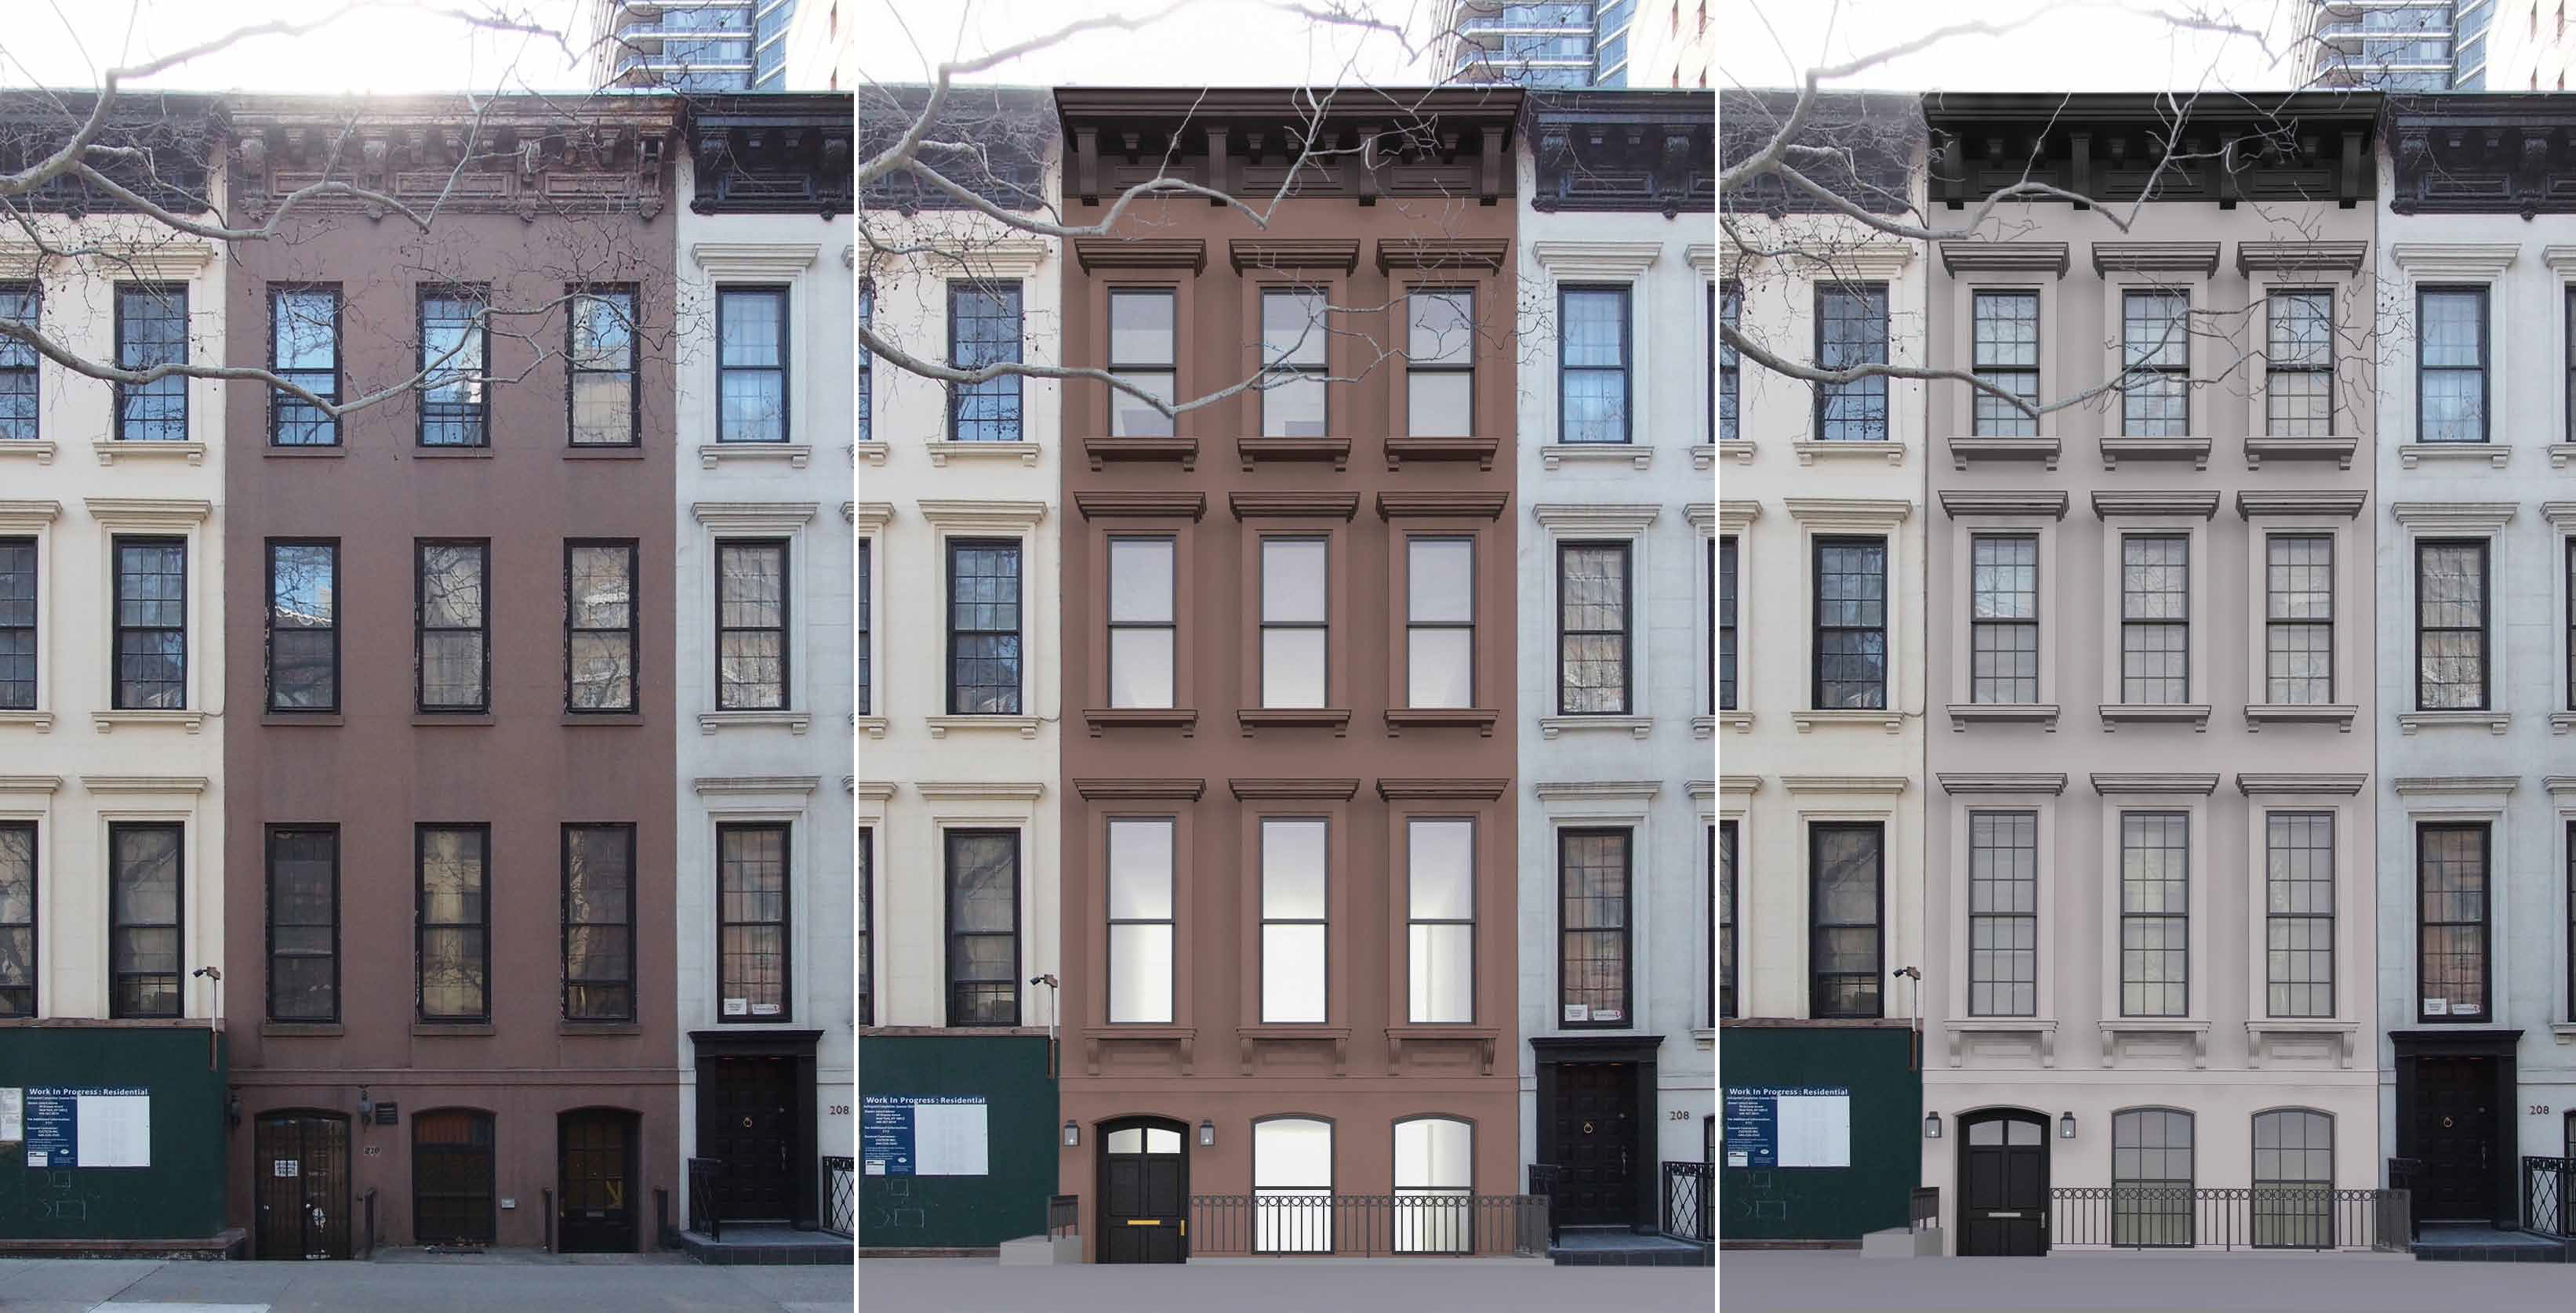 The front of 210 East 62nd Street - existing, previous proposal, and revised proposal